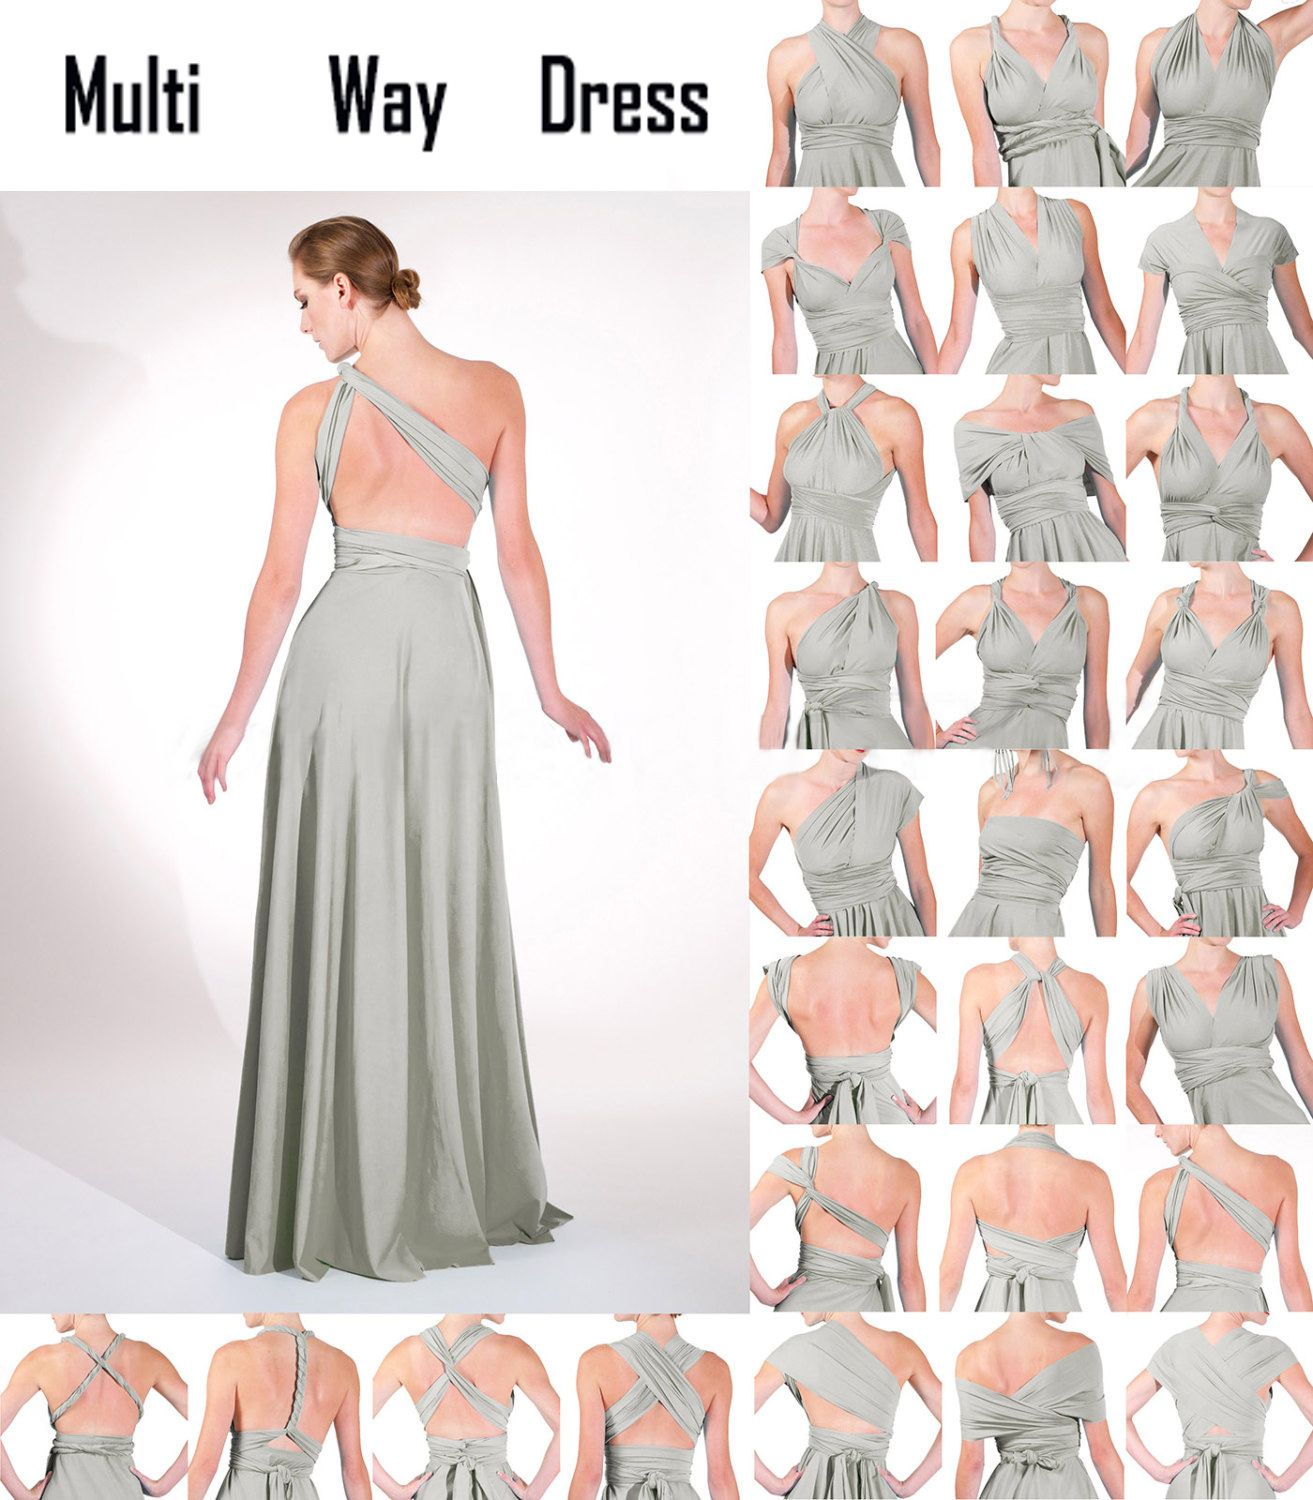 Women Beach Long Dress Summer 2019 Female Multiple Styles Fun Dresses Sleeveless Backless Lace Up Solid Rose Vestidos De Fiesta - Multi way dress, Maxi bridesmaid dresses, Convertible bridesmaid dress, Women's evening dresses, Long summer dresses, Long beach dress - Buy Women Beach Long Dress Summer 2019 Female Multiple Styles Fun Dresses Sleeveless Backless Lace Up Solid Rose Vestidos De Fiesta at www yonses com! Free shipping to 185 countries  45 days money back guarantee